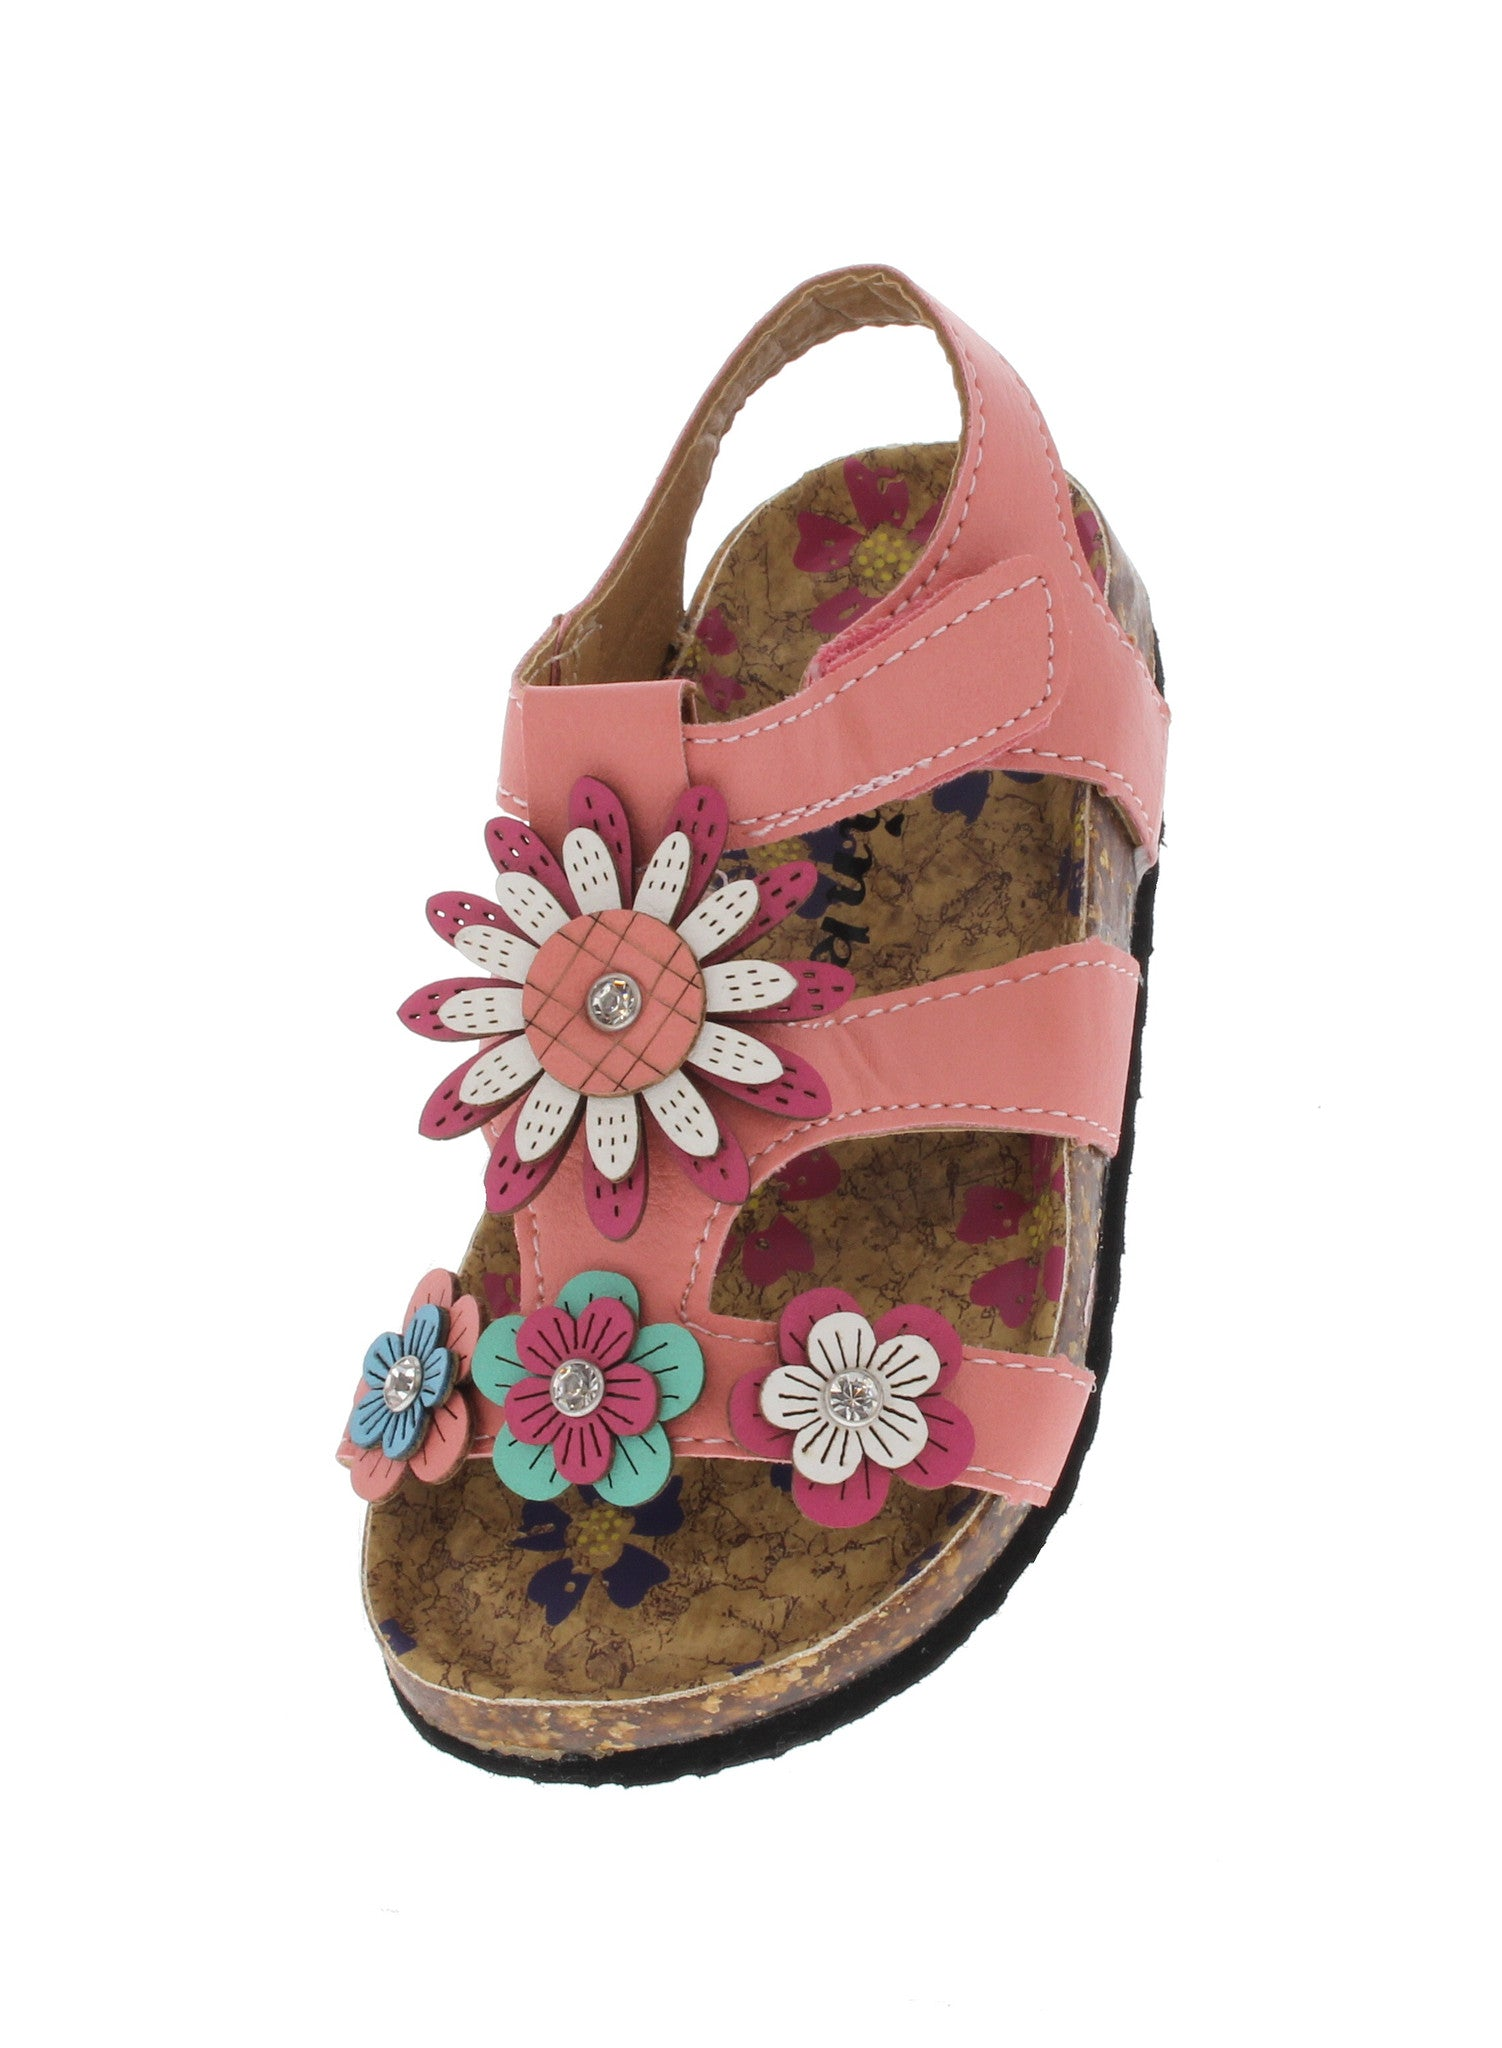 Little Girl Kids Sandals Wholesale For ly $10 88 A Pair